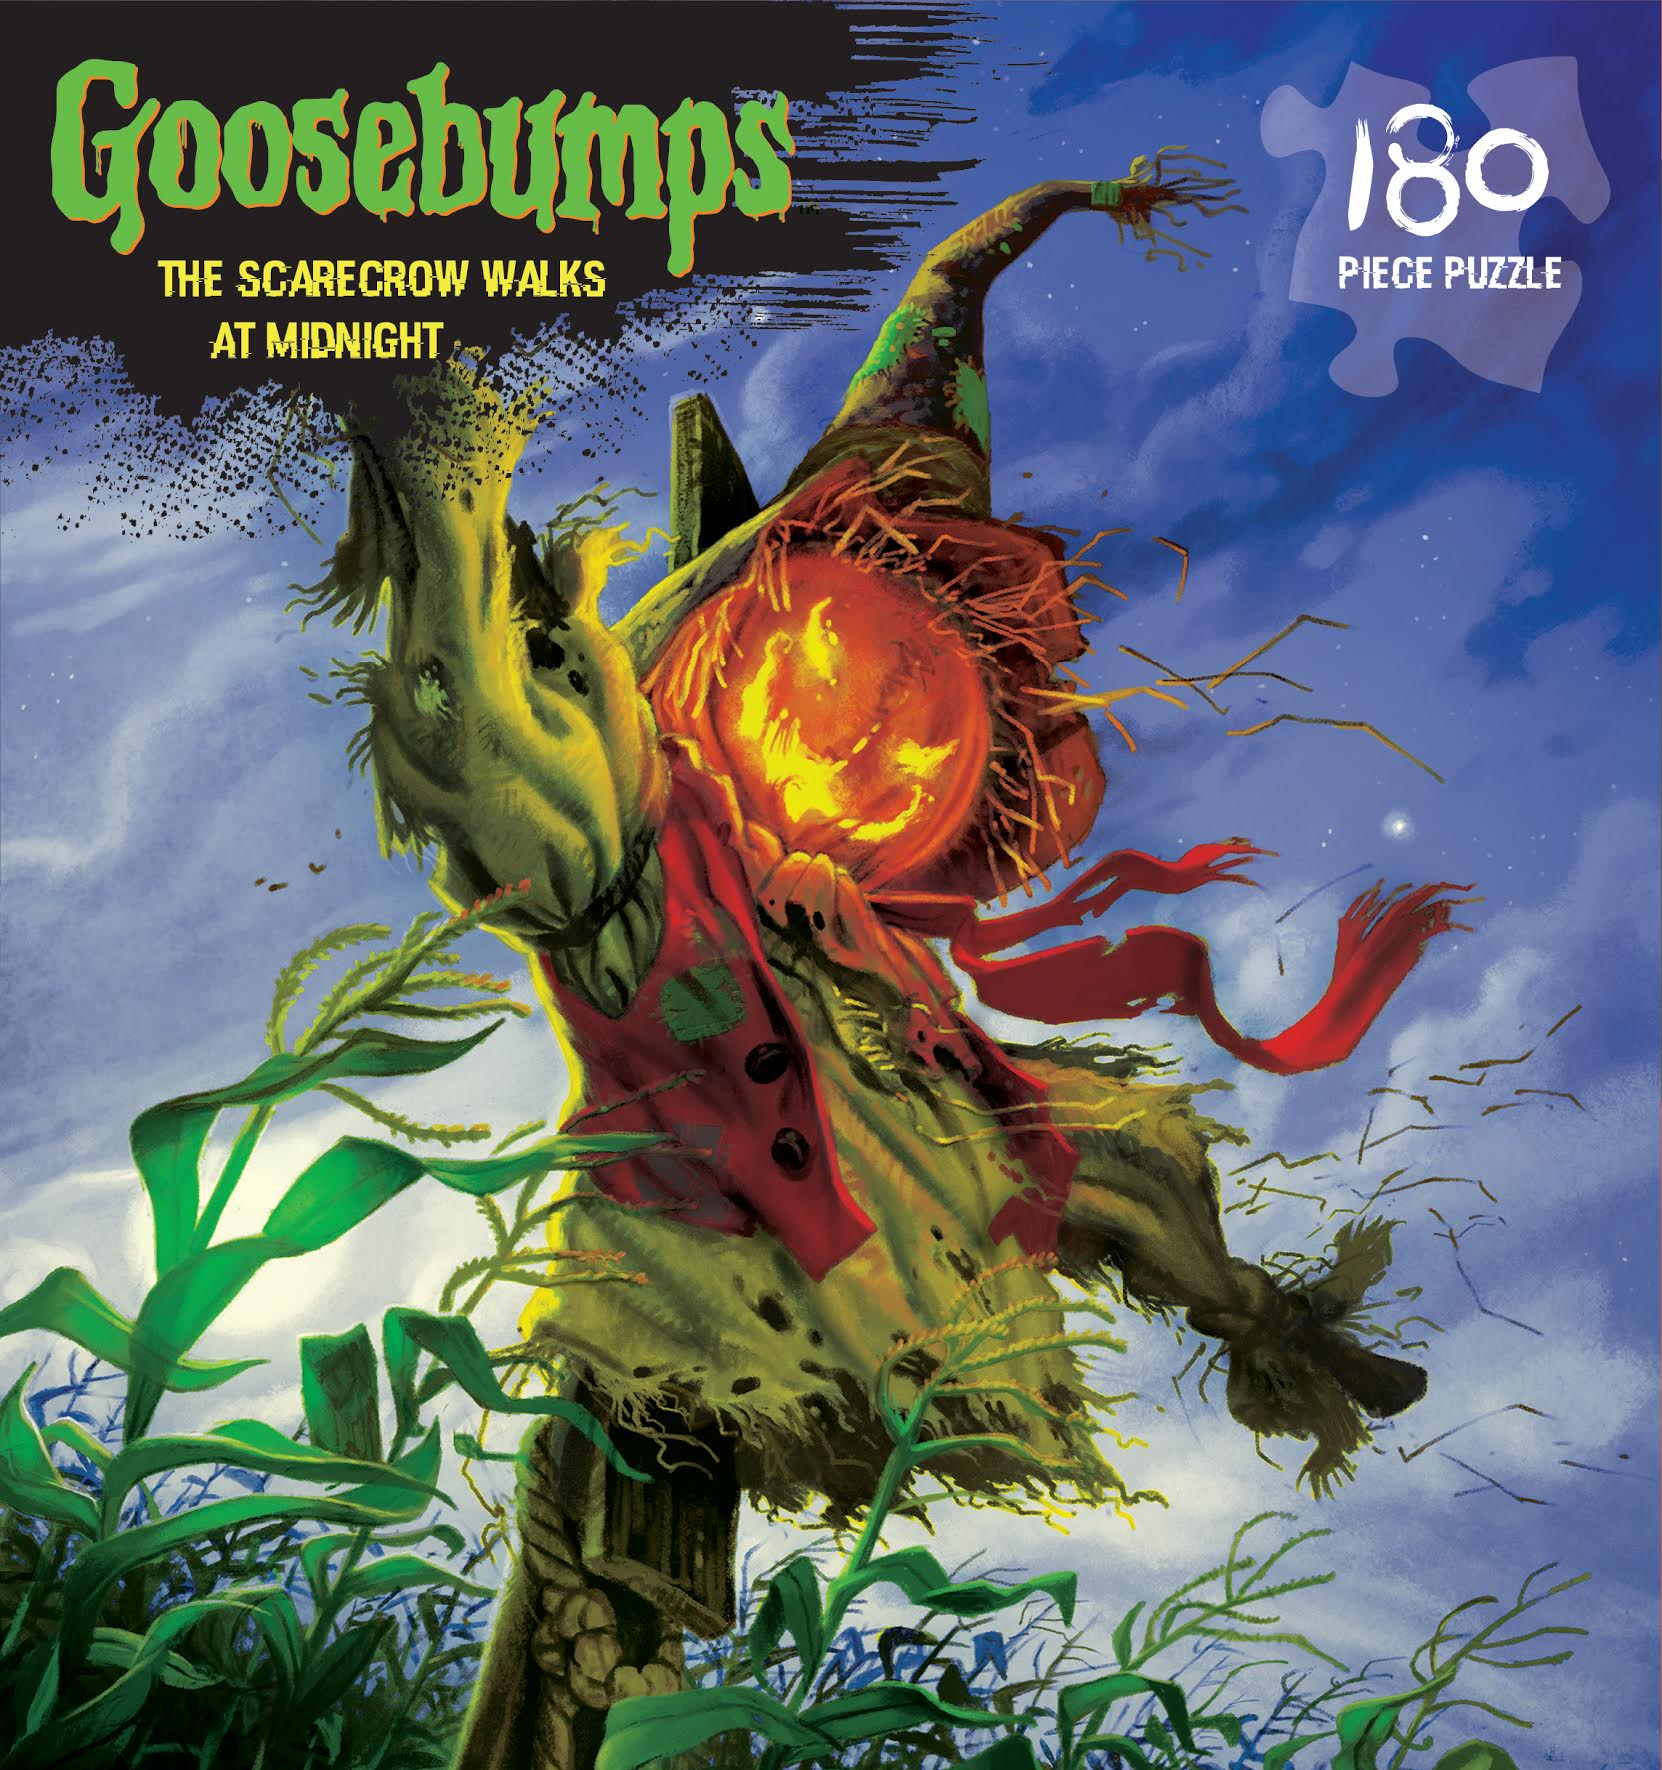 Goosebumps Puzzle - The Scarecrow Walks at Midnight 180 piece jigsaw puzzle by Outset Media